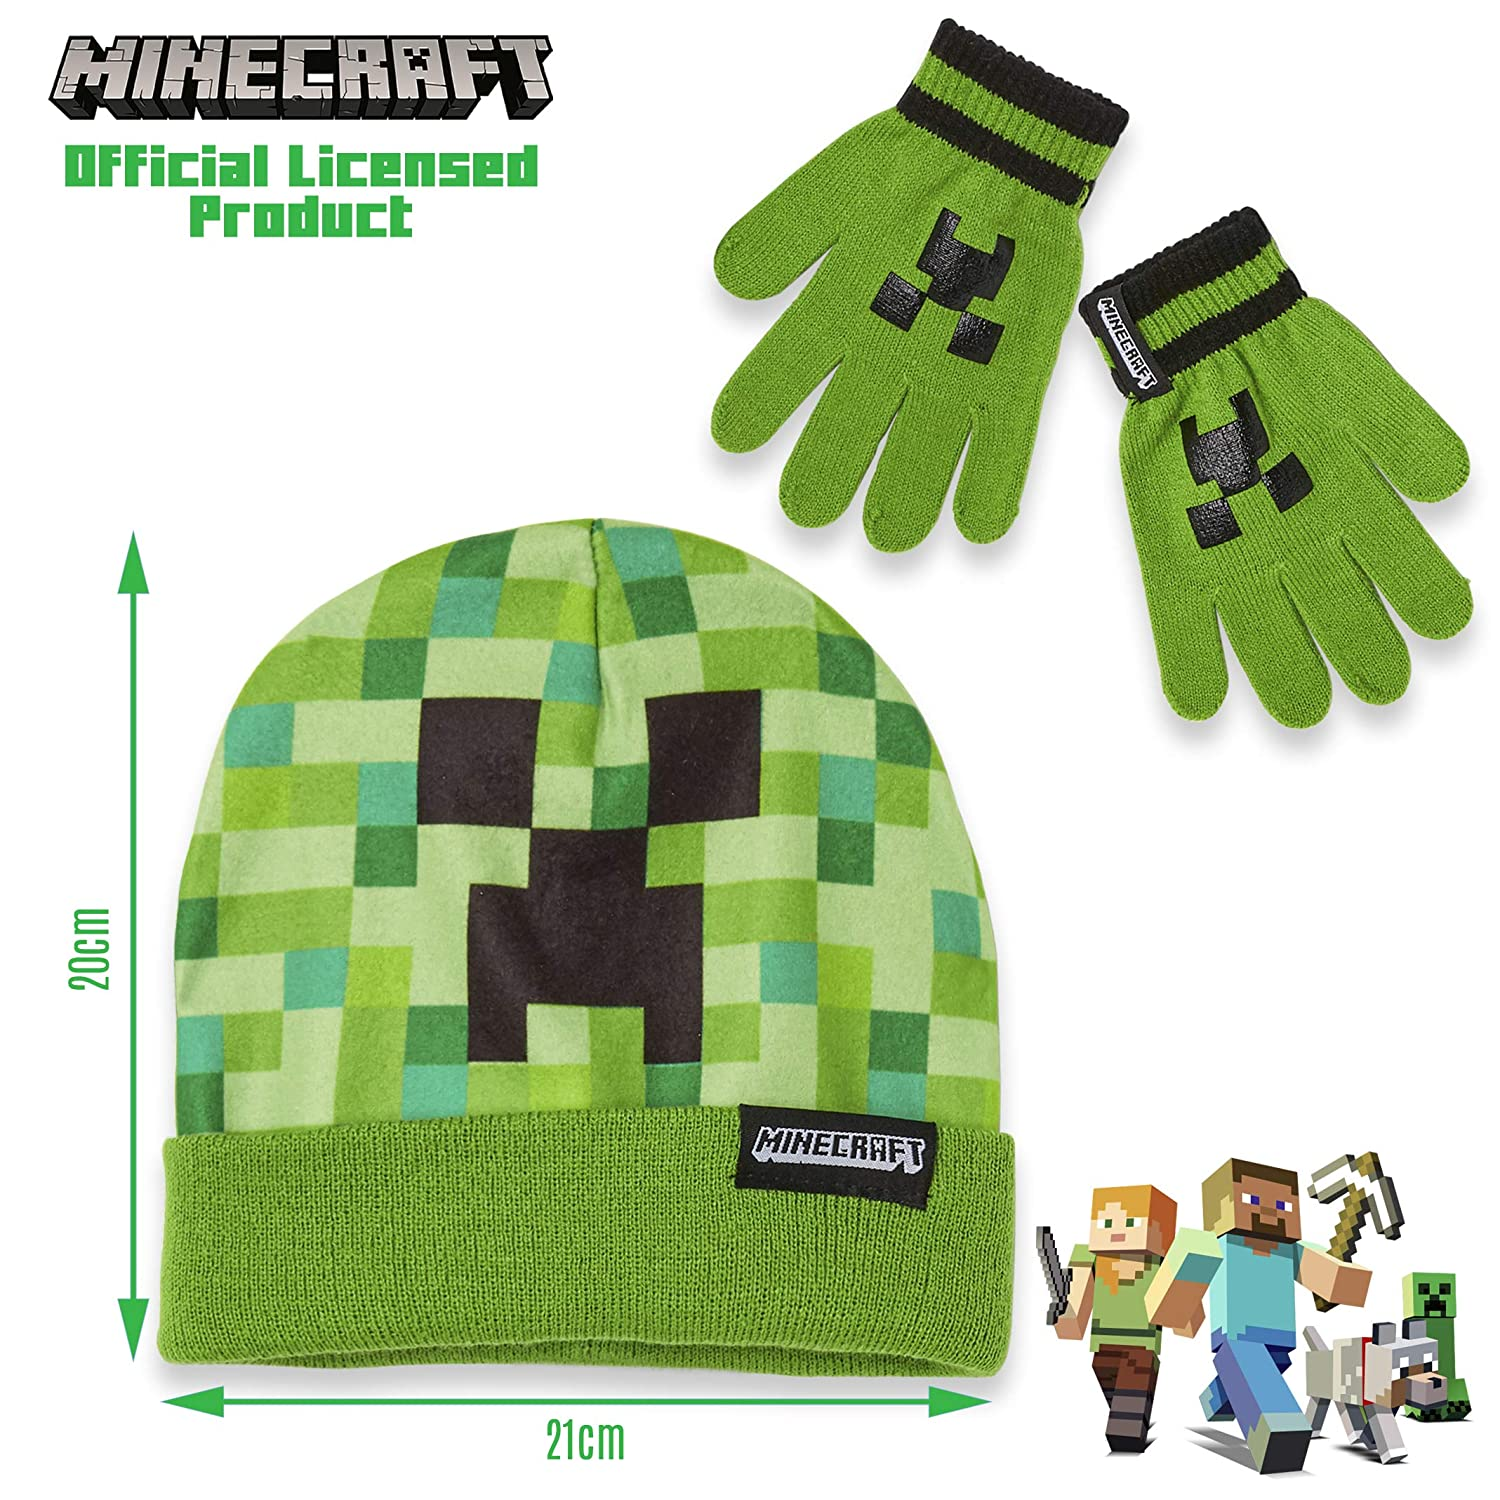 Minecraft Hat And Gloves For Boys Official Minecraft Merchandise Super Soft and Comfortable Kids Hat Green Beanie Hat Featuring Creeper Pixel Design Great Gaming Gift Idea for Boys or Girls